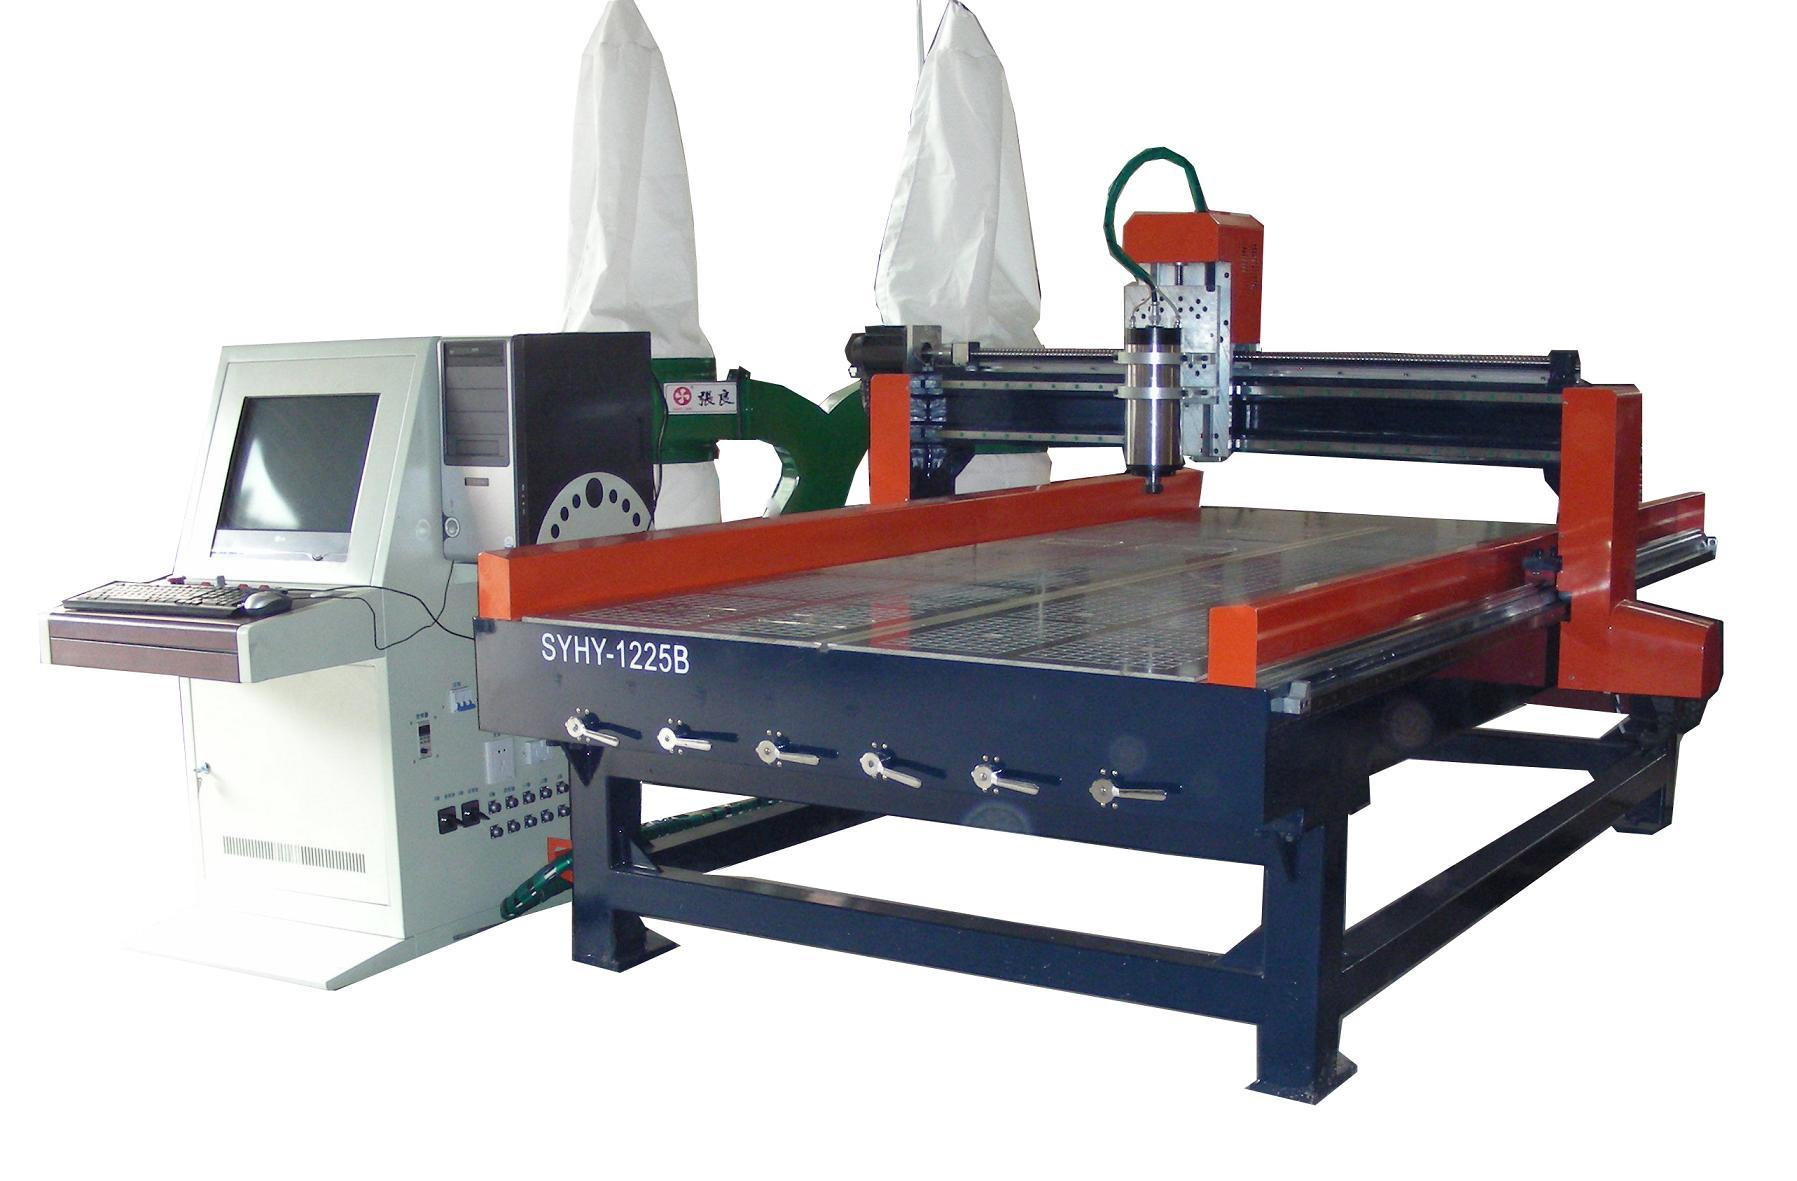 cnc wood carving machine tools cnc wood carving machines